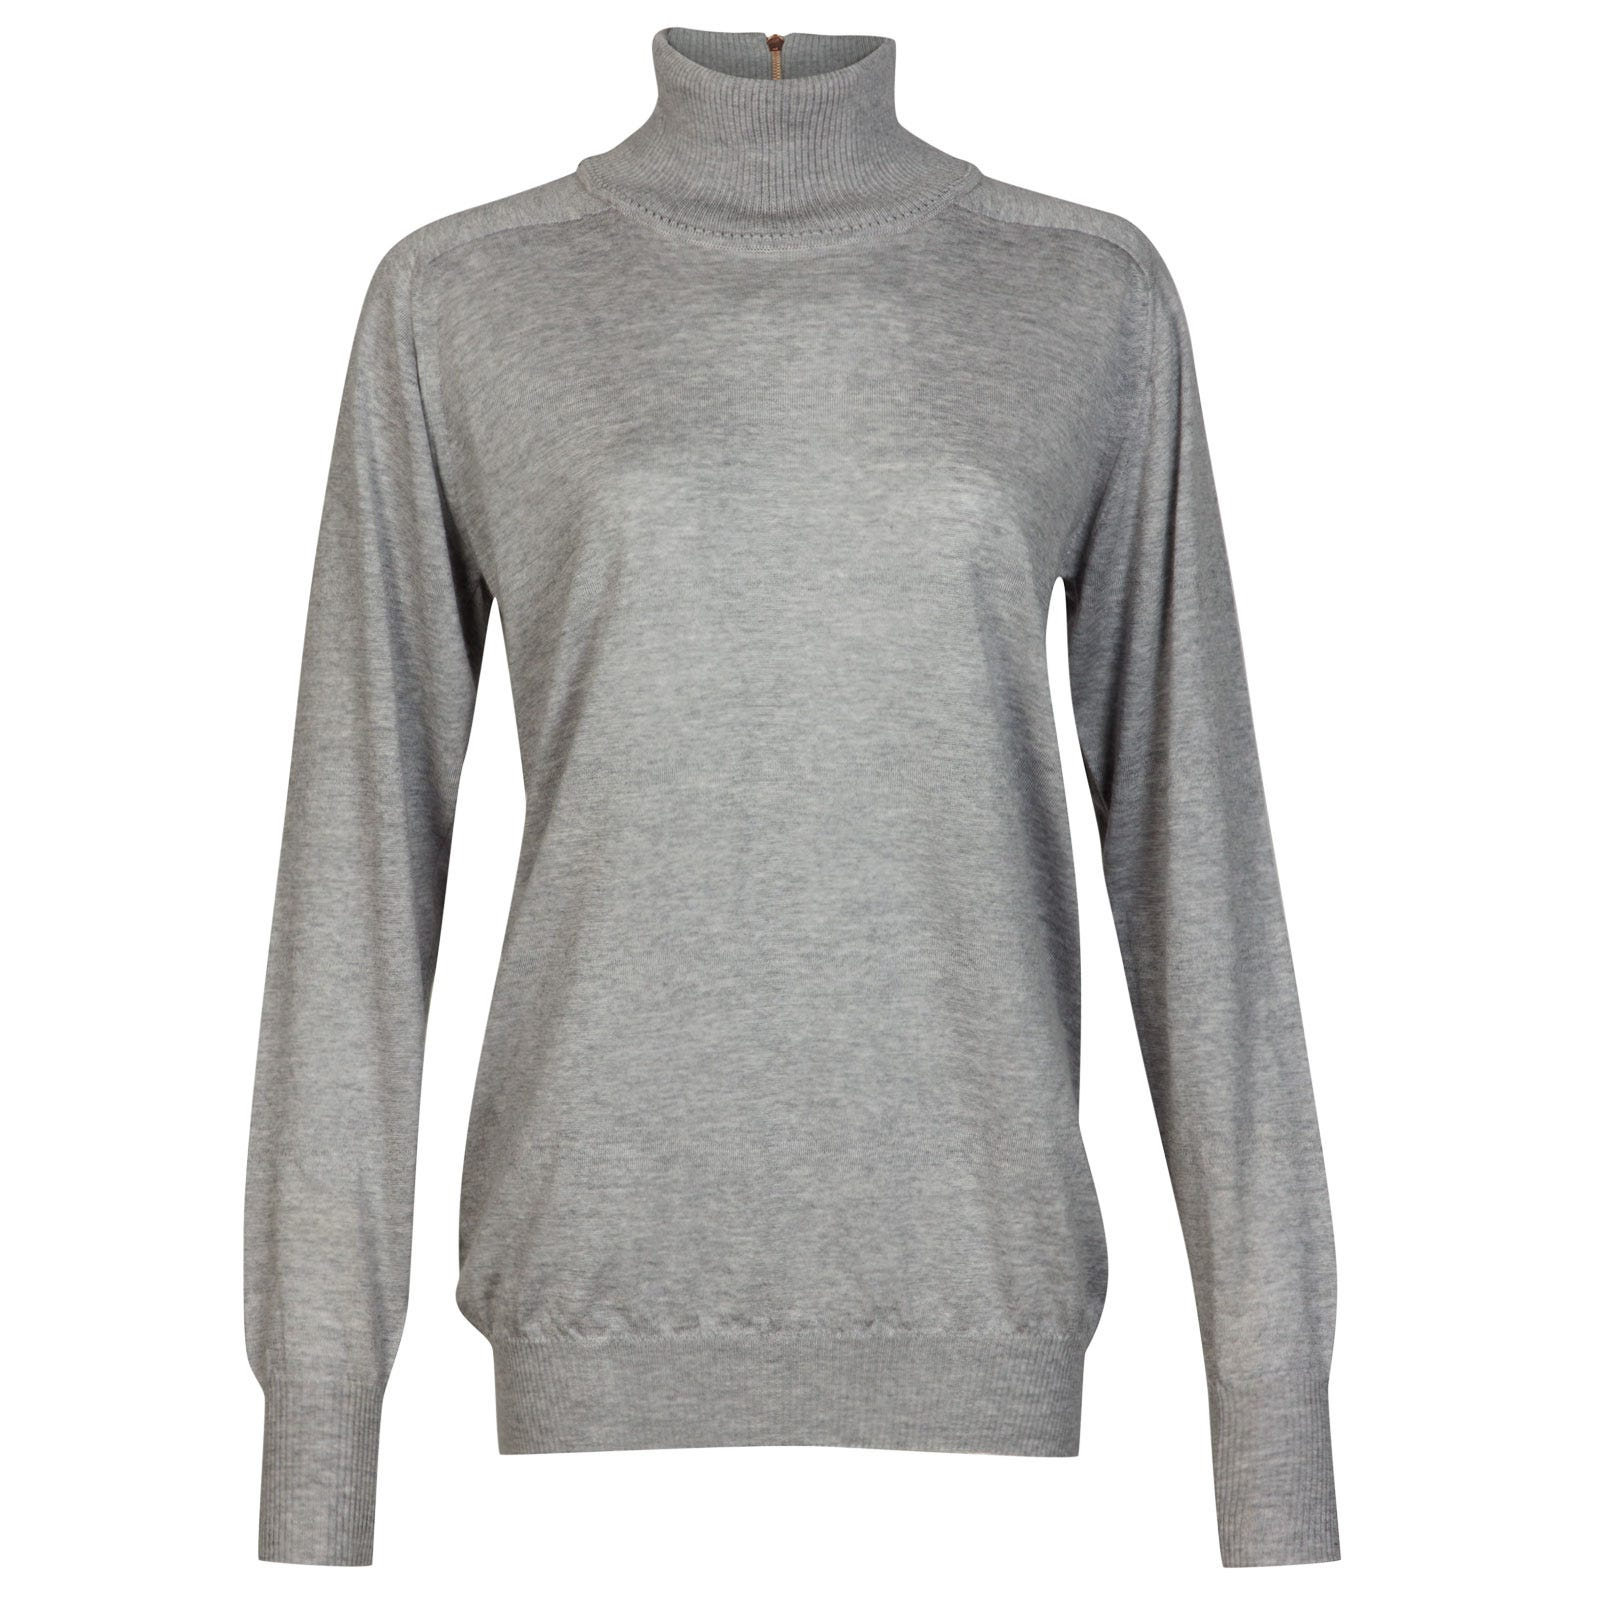 John Smedley woolf Merino Wool & Cashmere Sweater in Soft Grey-M